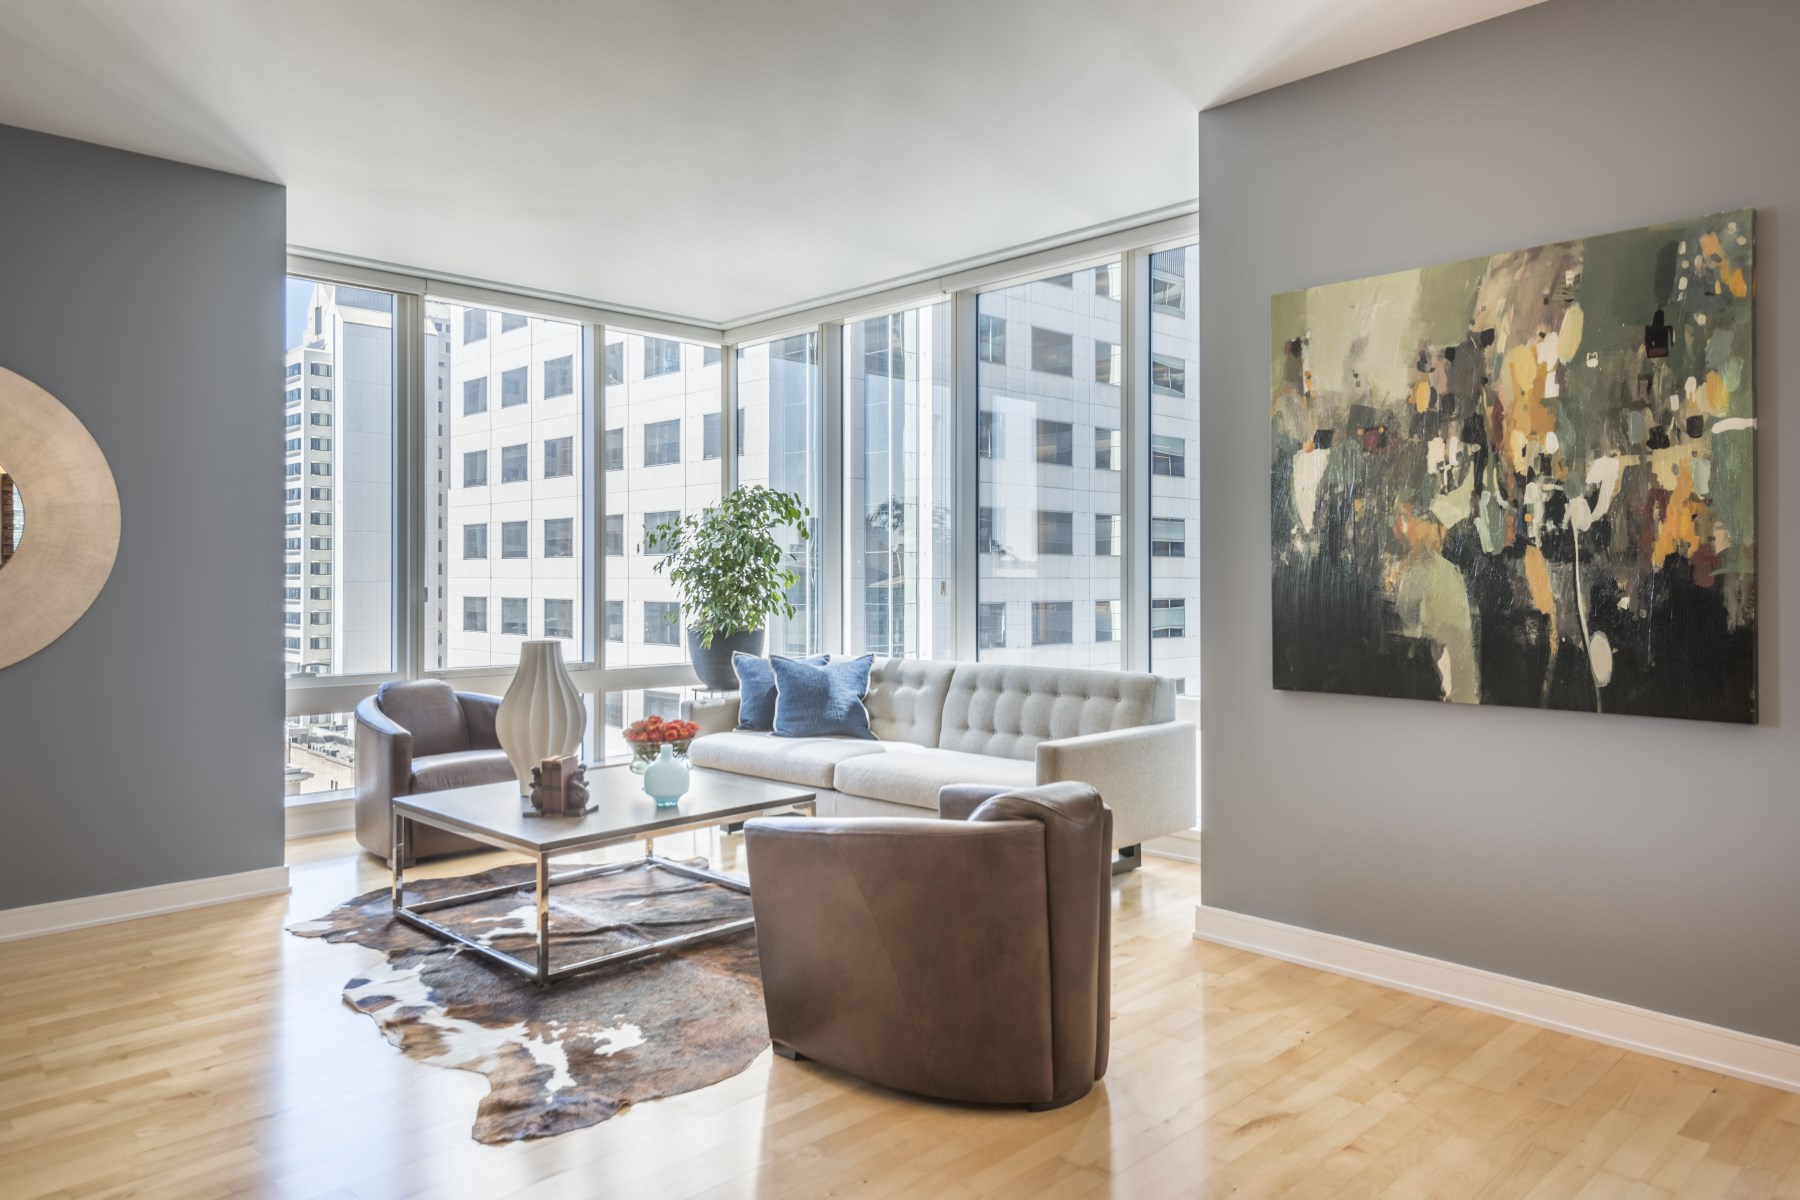 Condominium for Sale at The Residences at Millennium Tower 301 Mission St Apt 17A San Francisco, California, 94105 United States